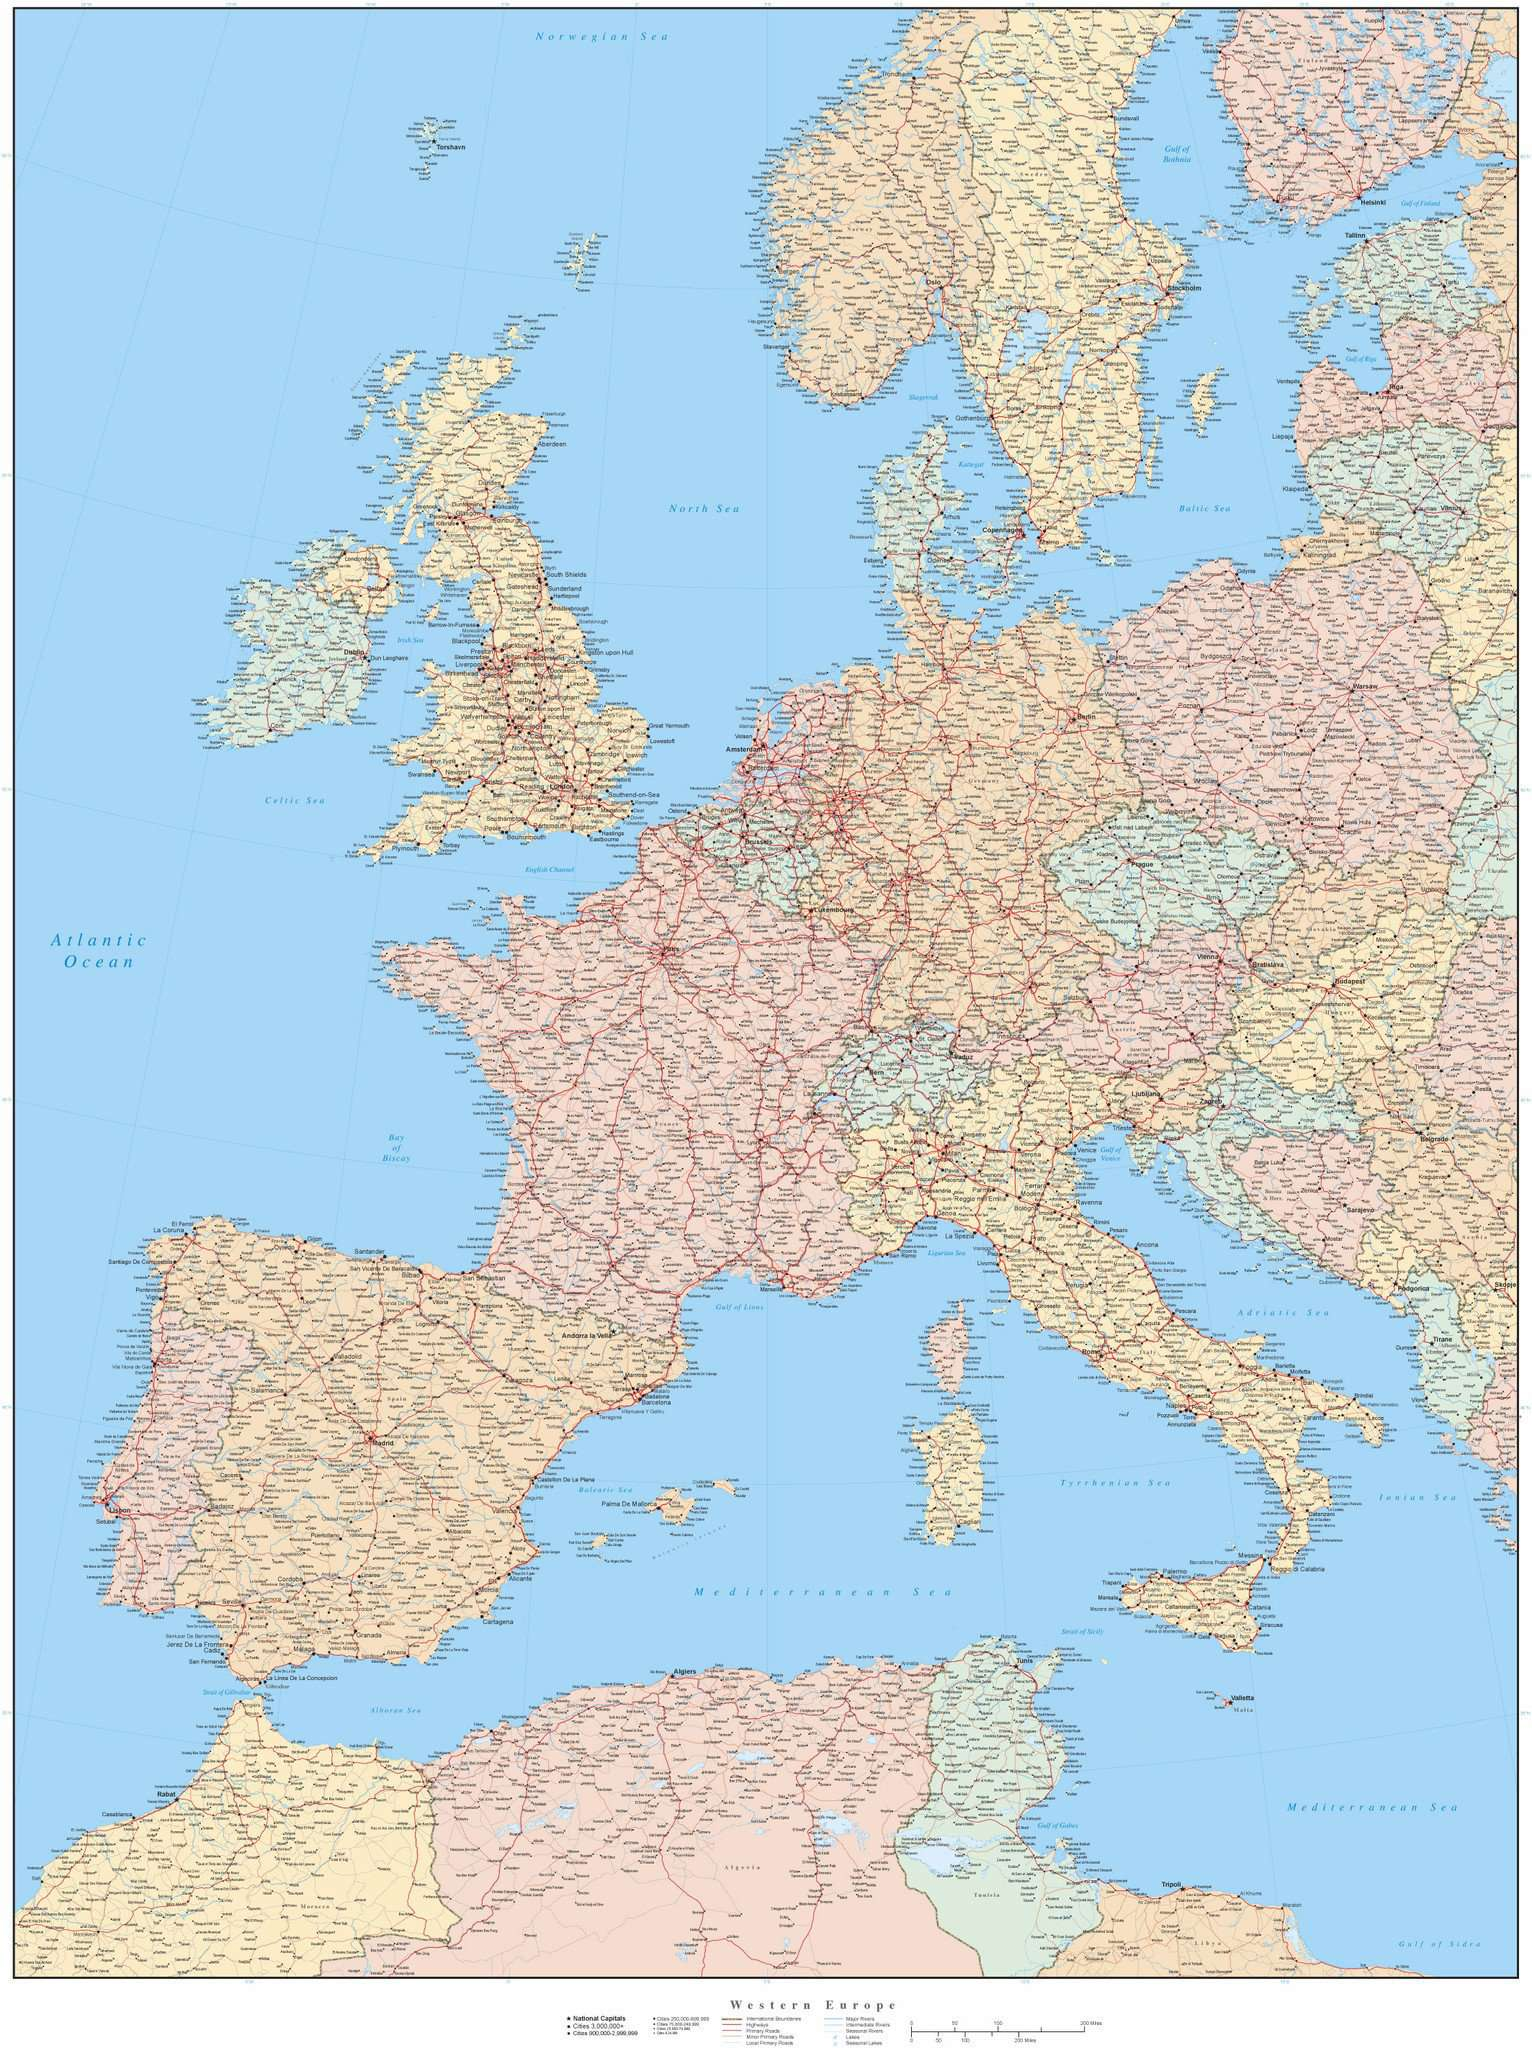 Picture of: Western Europe Map In Adobe Illustrator Vector Format